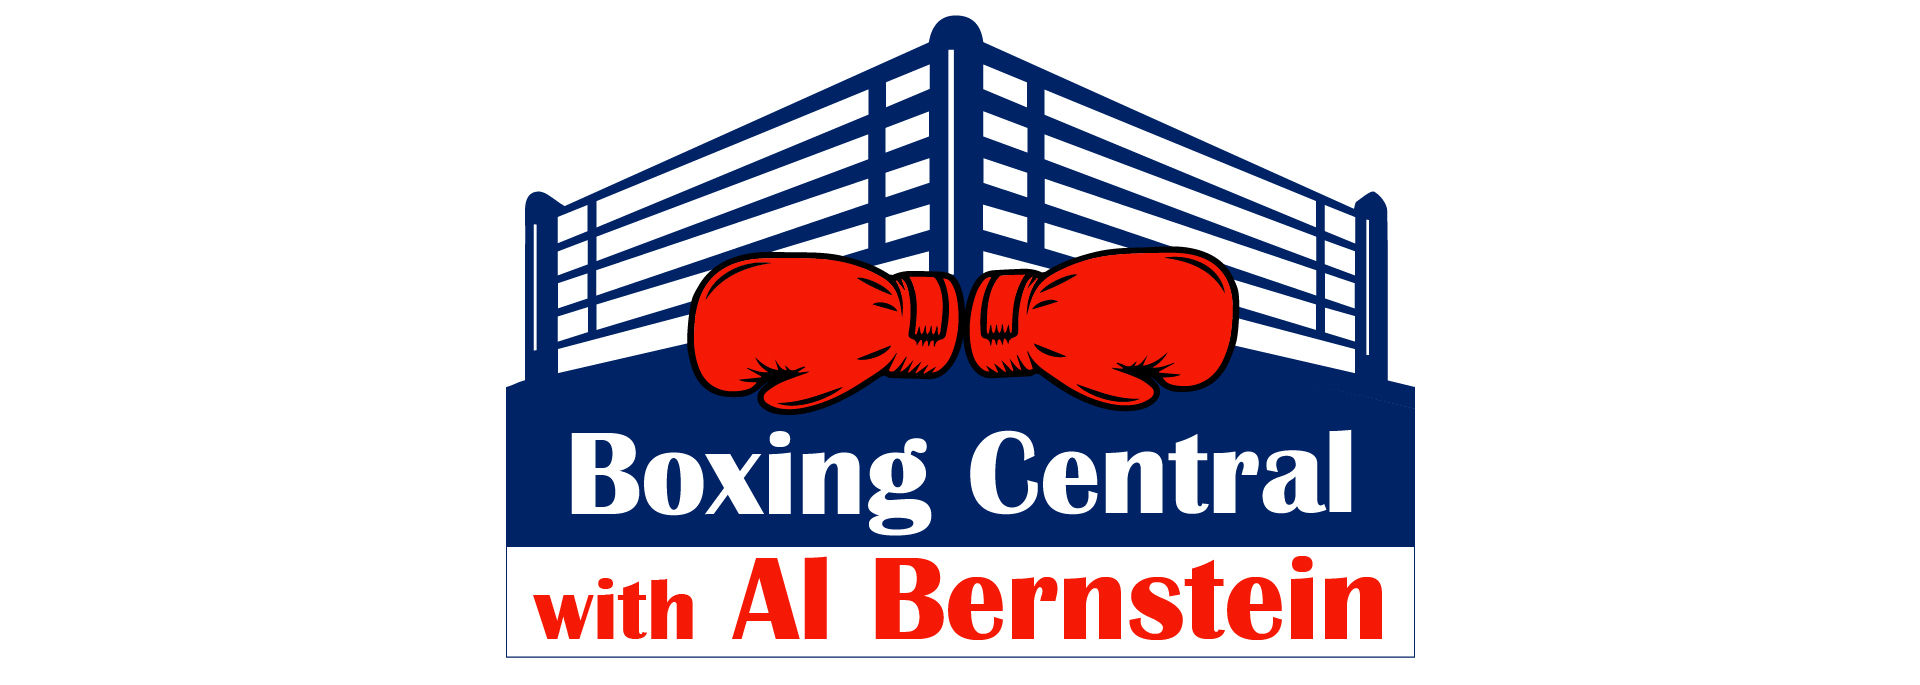 Boxing Central with Al Bernstein channel